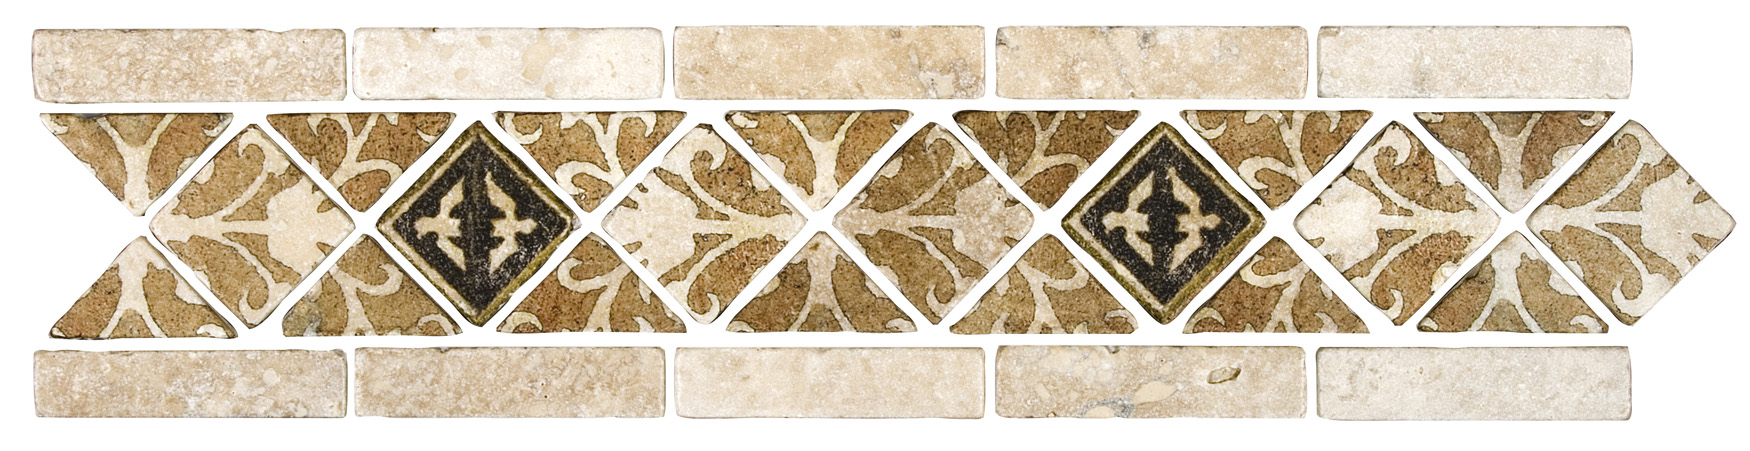 Amaretti Deco Strip - Earth - Available only on 5x20 Mesh-mounted stone